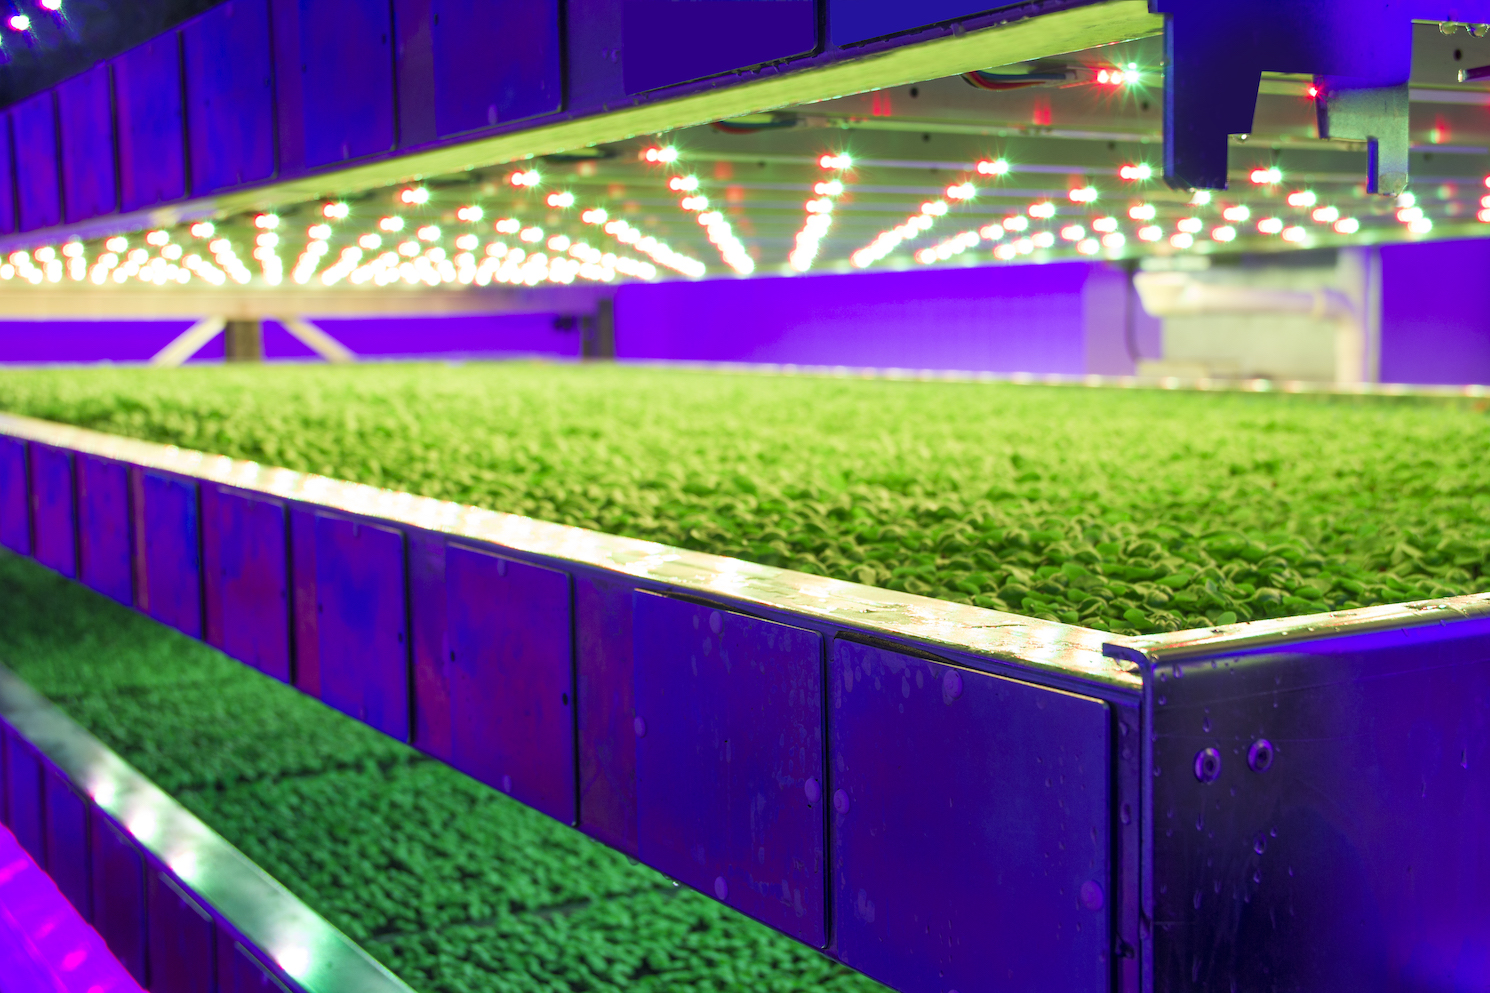 Greens in trays